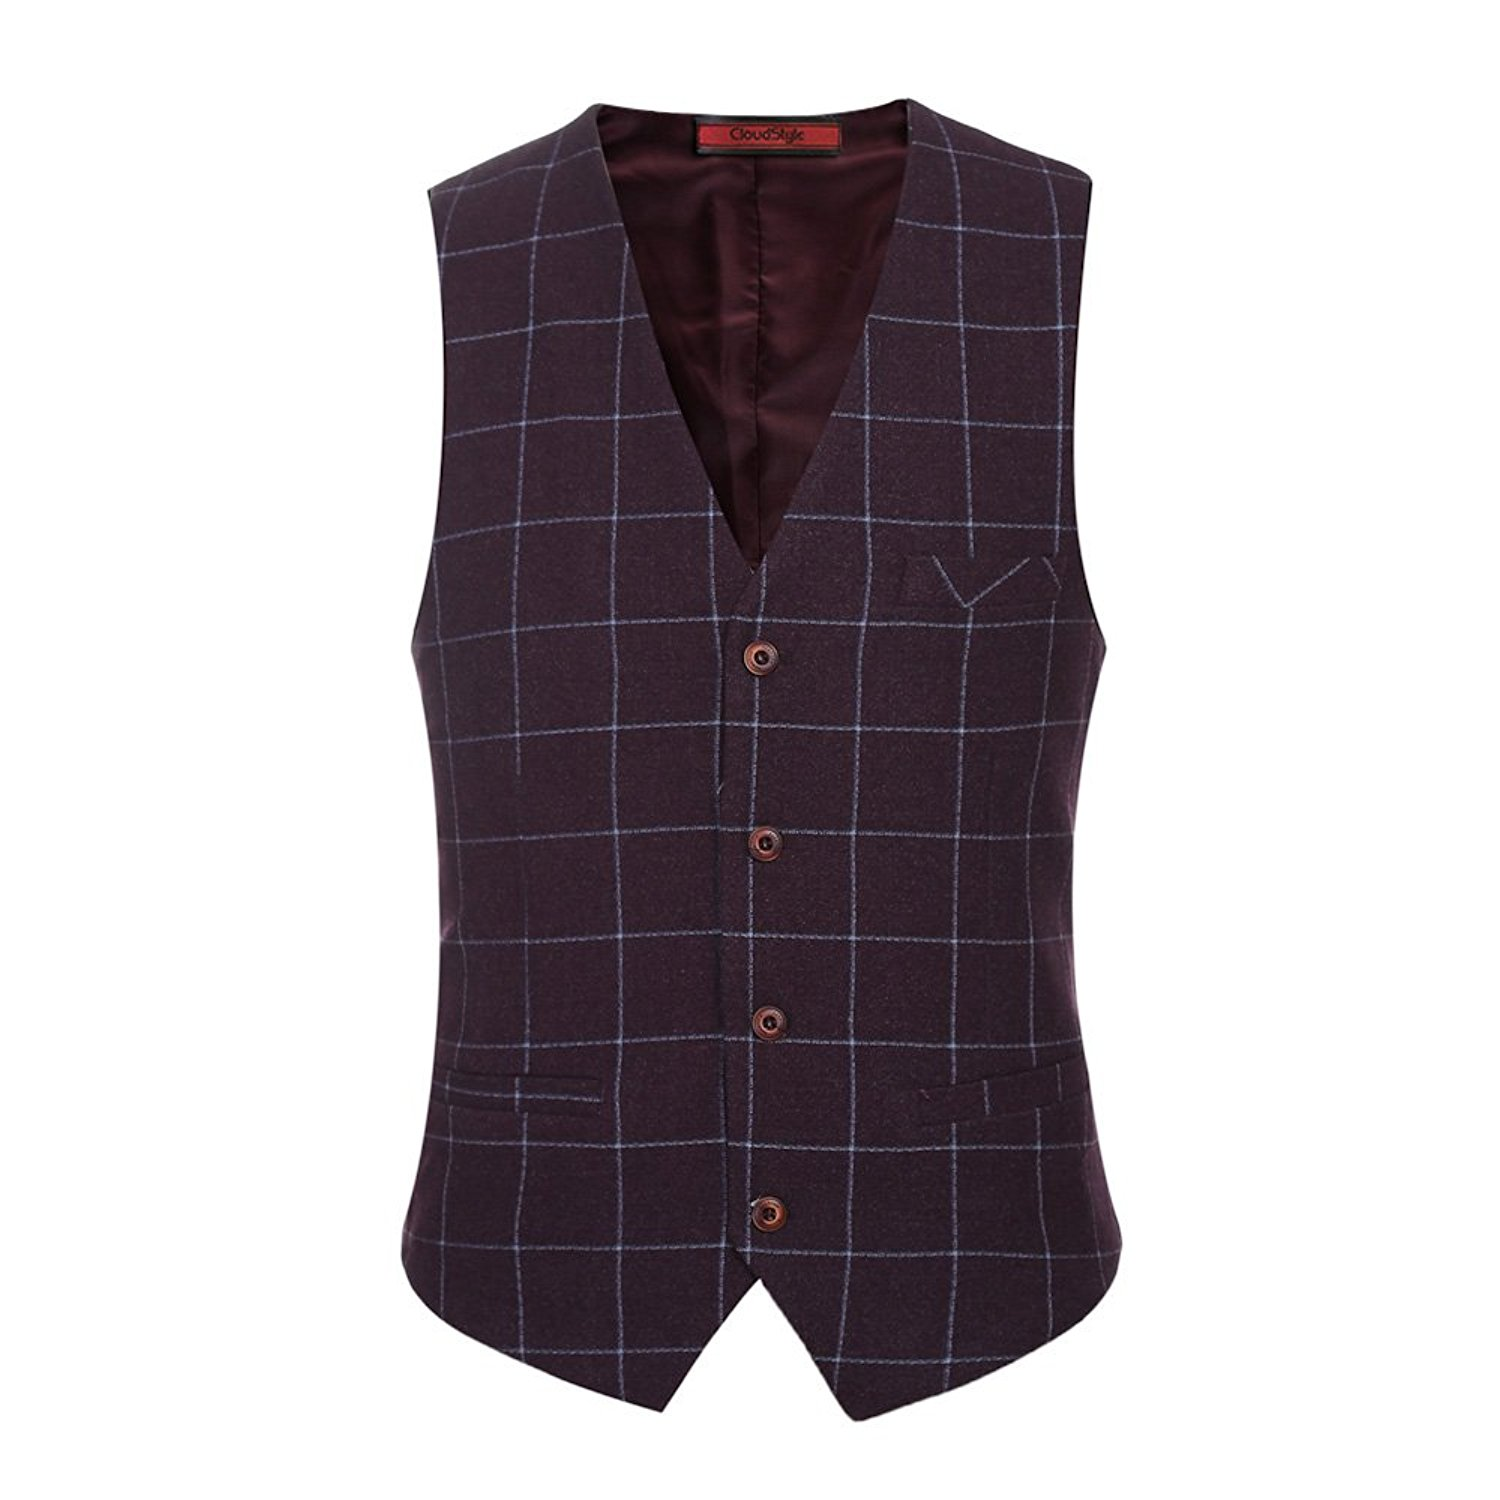 JOKHOO Mens Business Solid Button Knitwear Sweater Vest Sleeveless Knitted Waistcoat